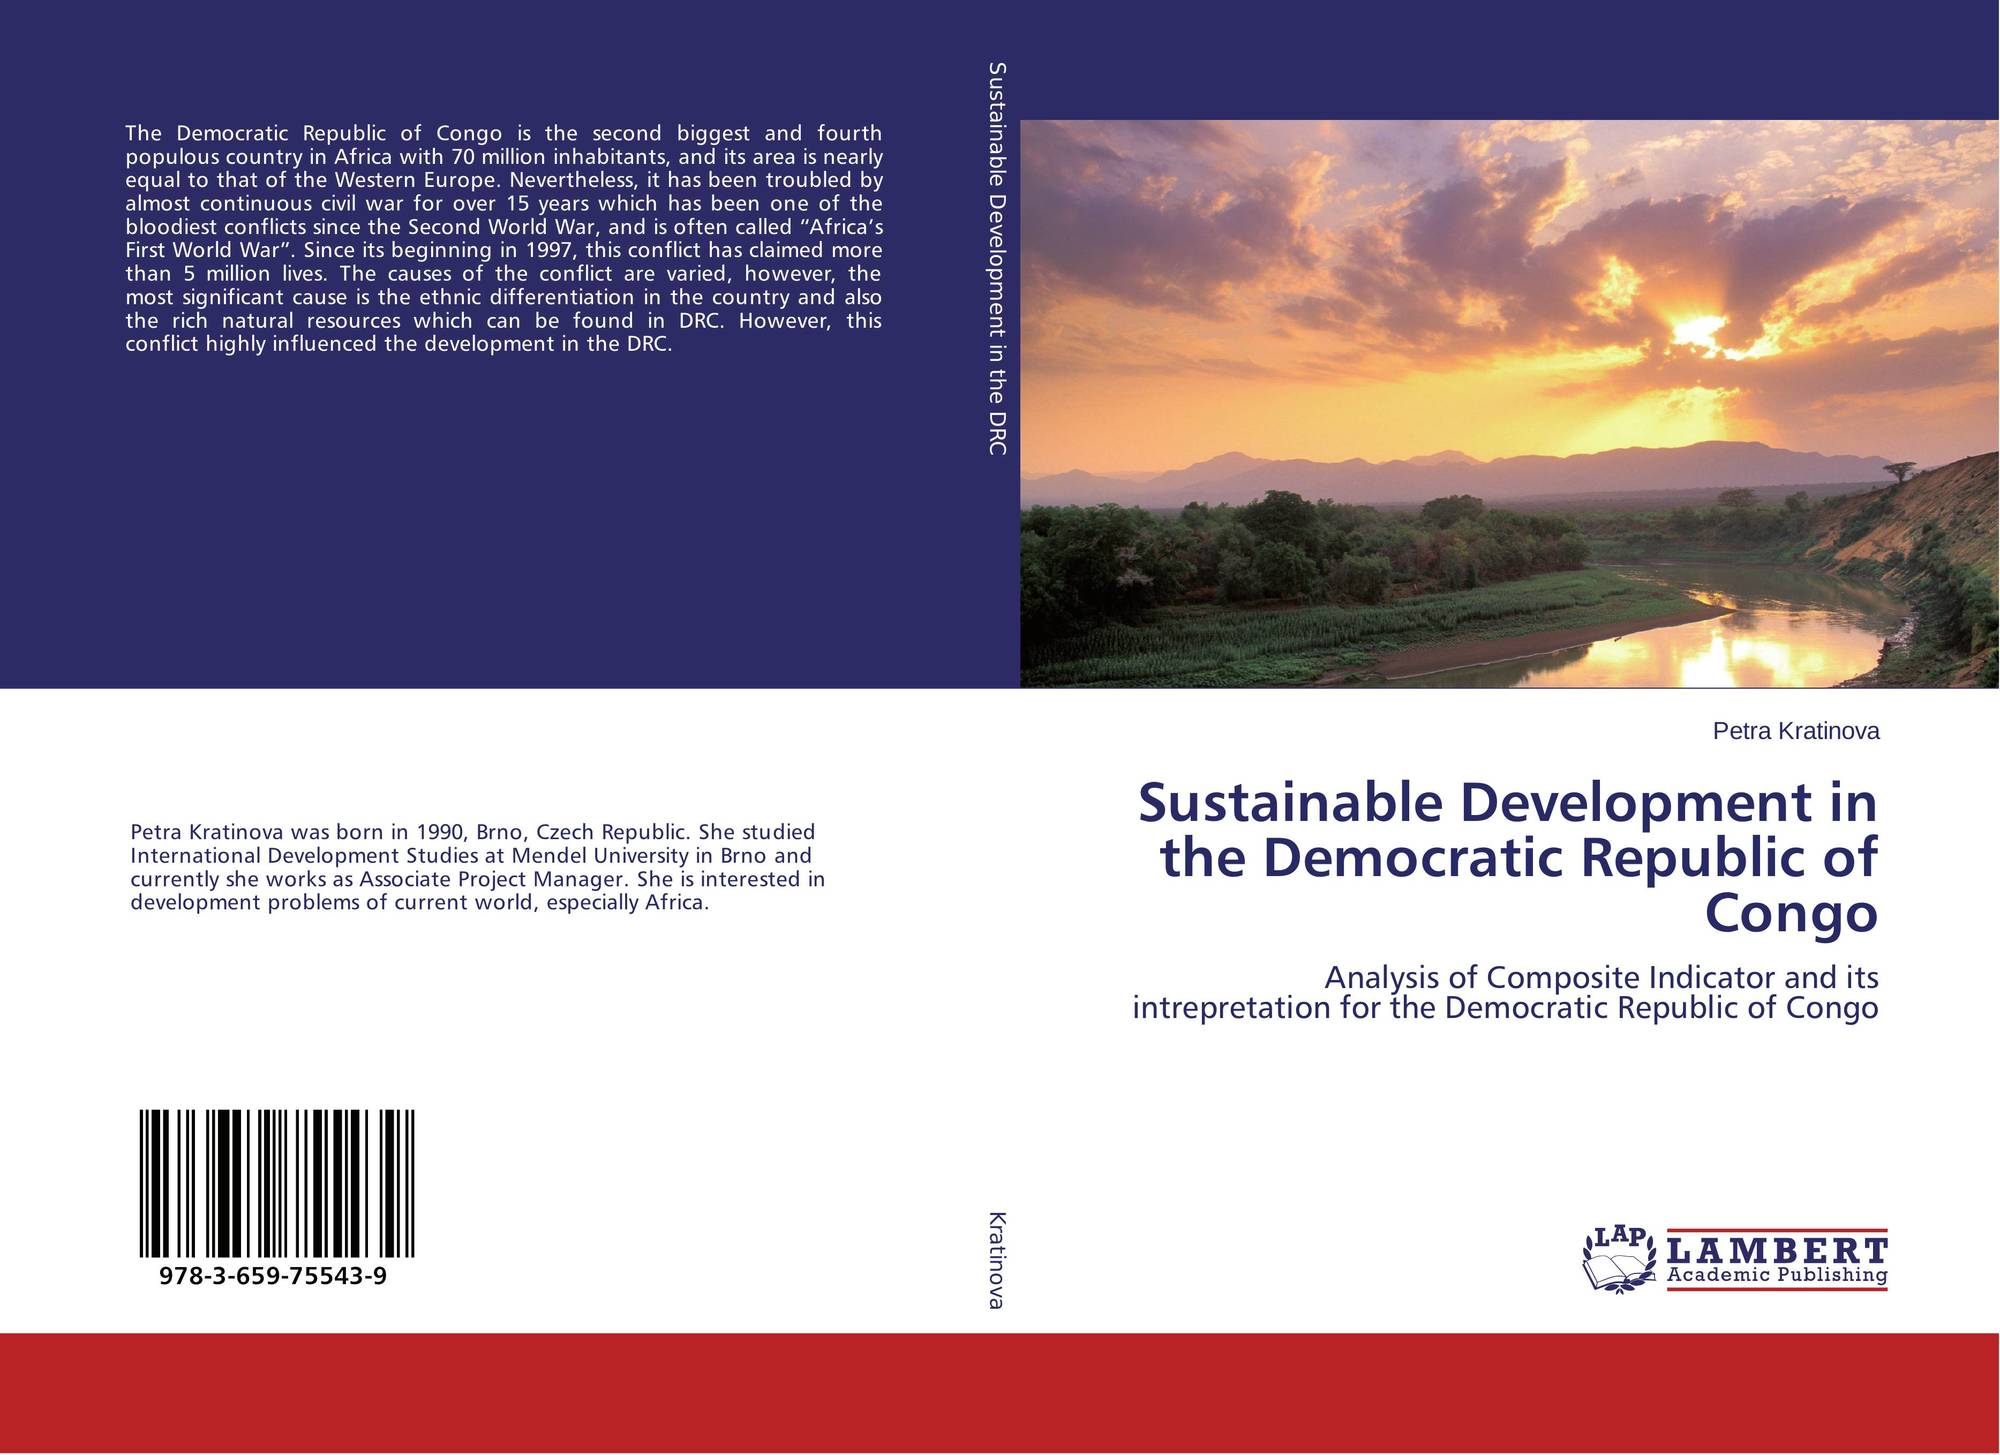 an analysis of the democratic republic of congo